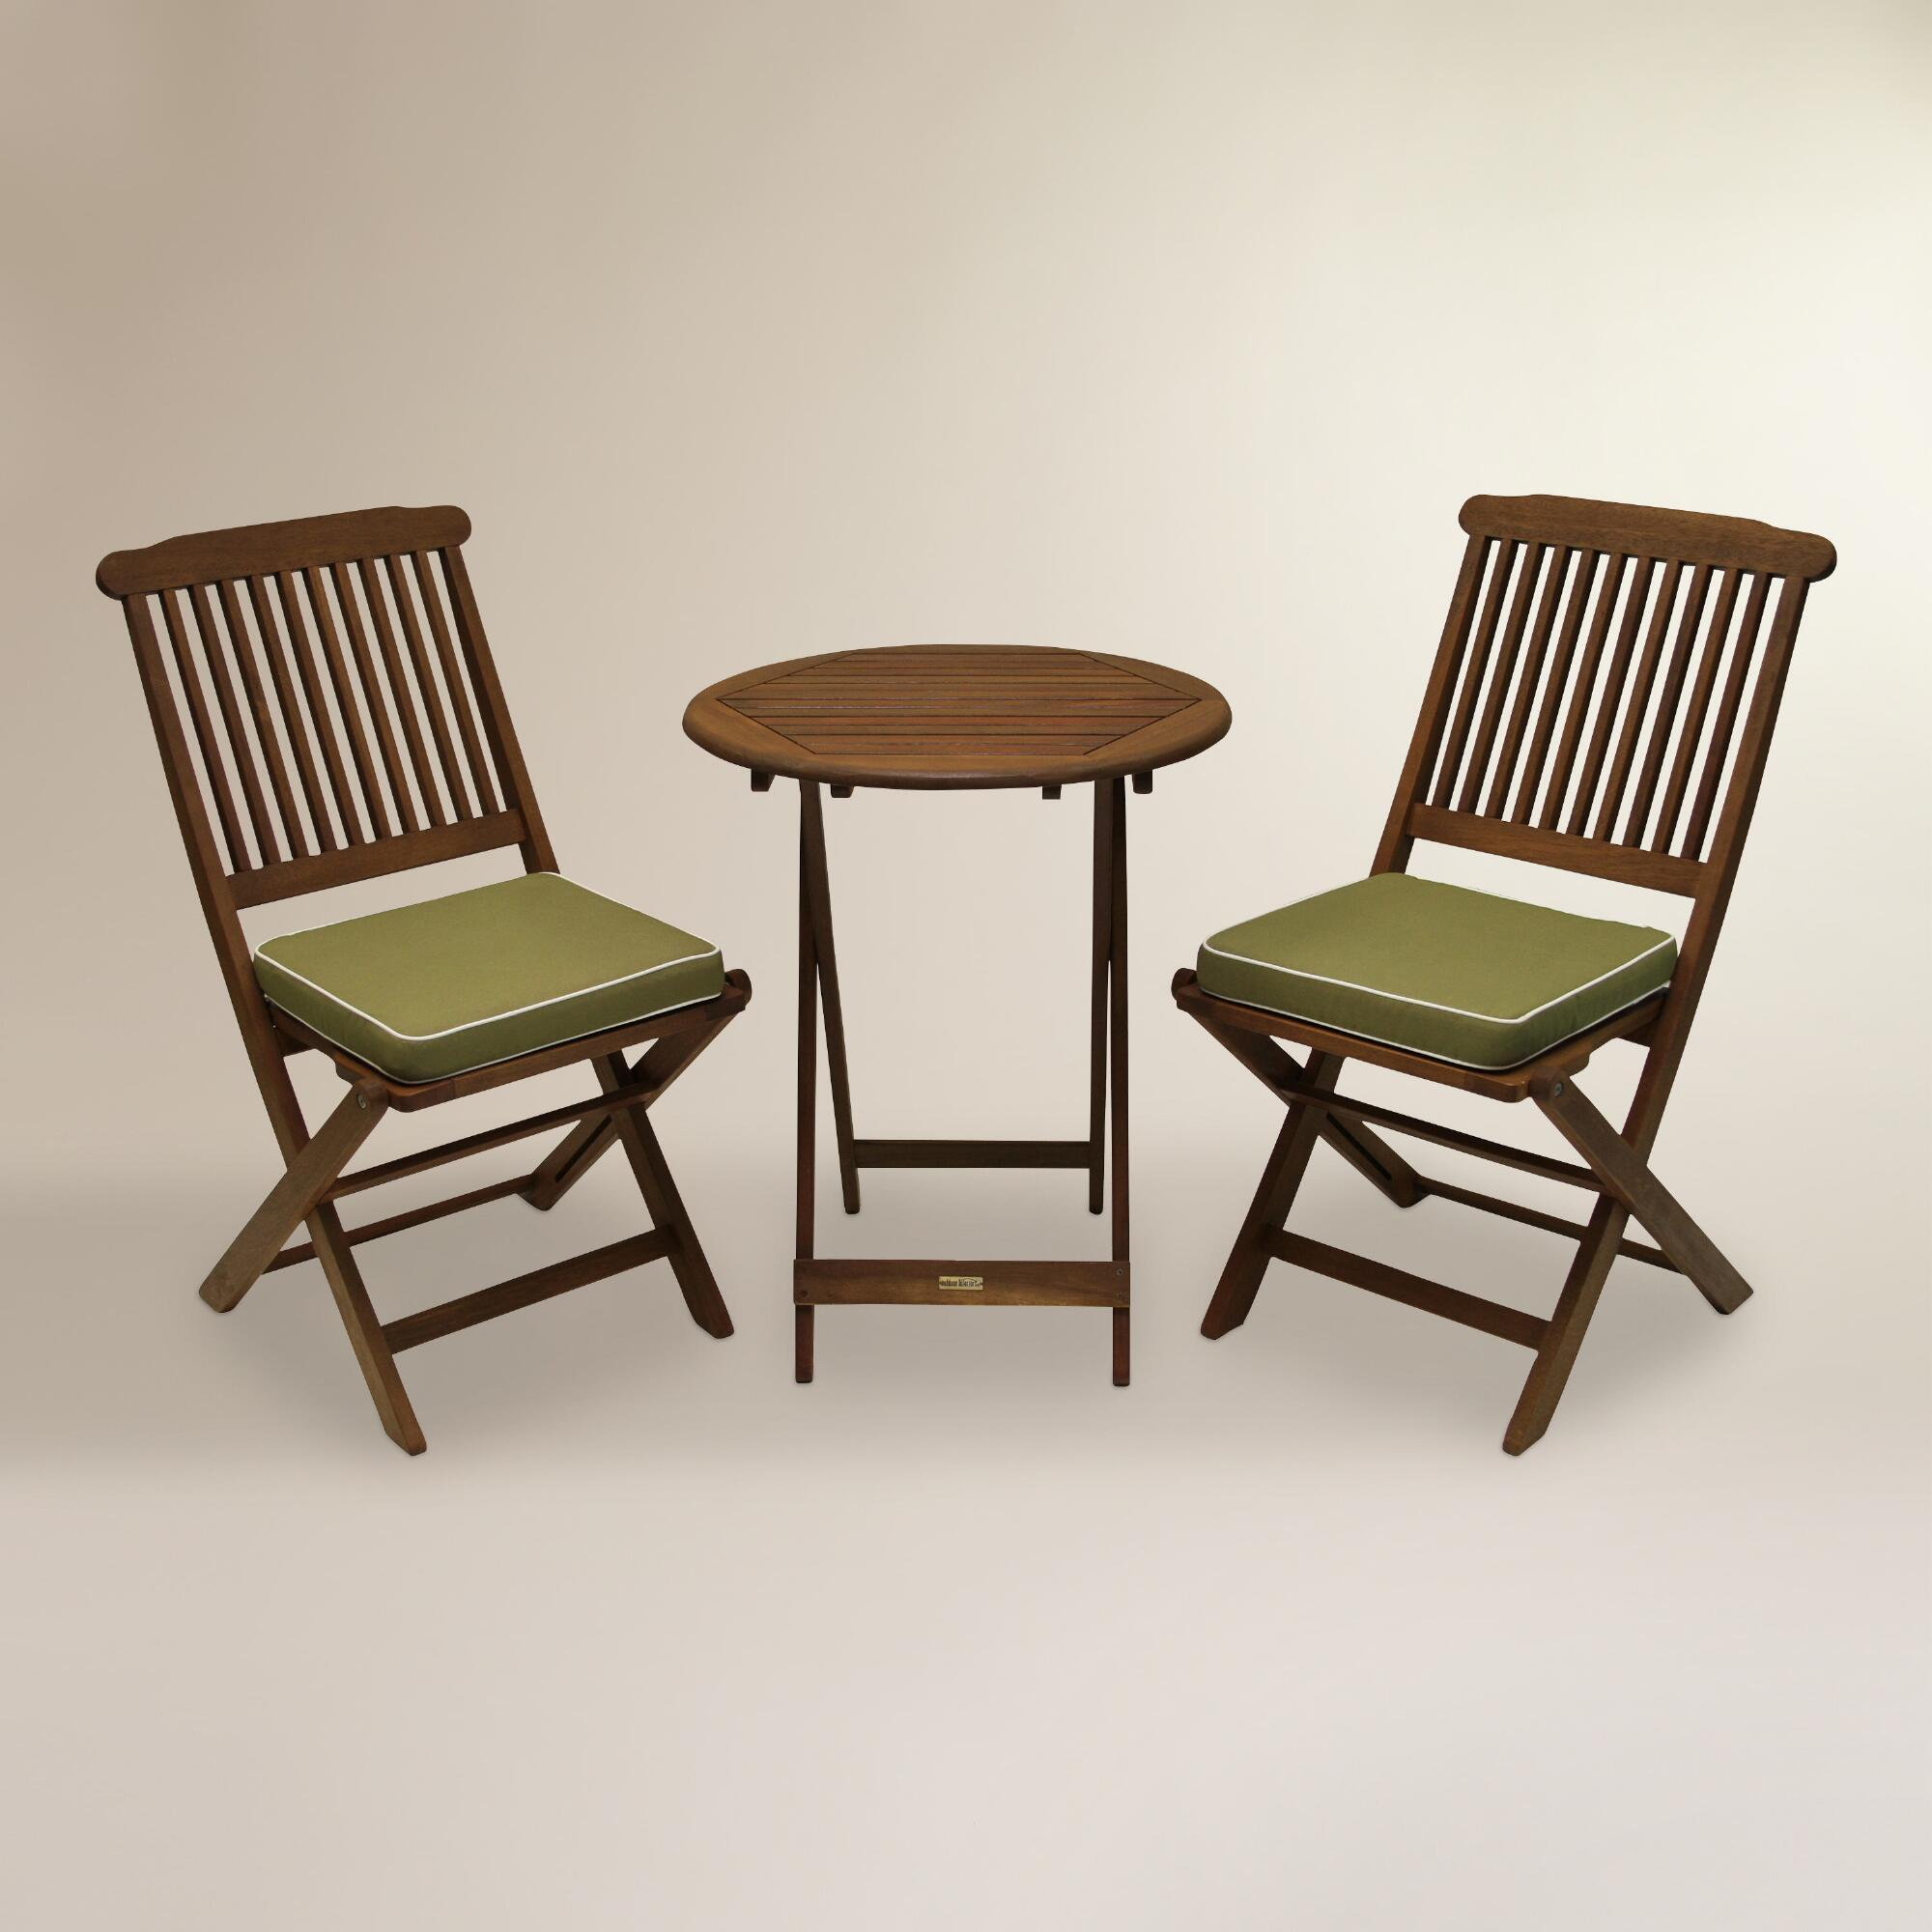 Cavallo 3-Piece Bistro Set with Sage Cushions: Brown/Green - Wood by World Market Cost Plus World Market